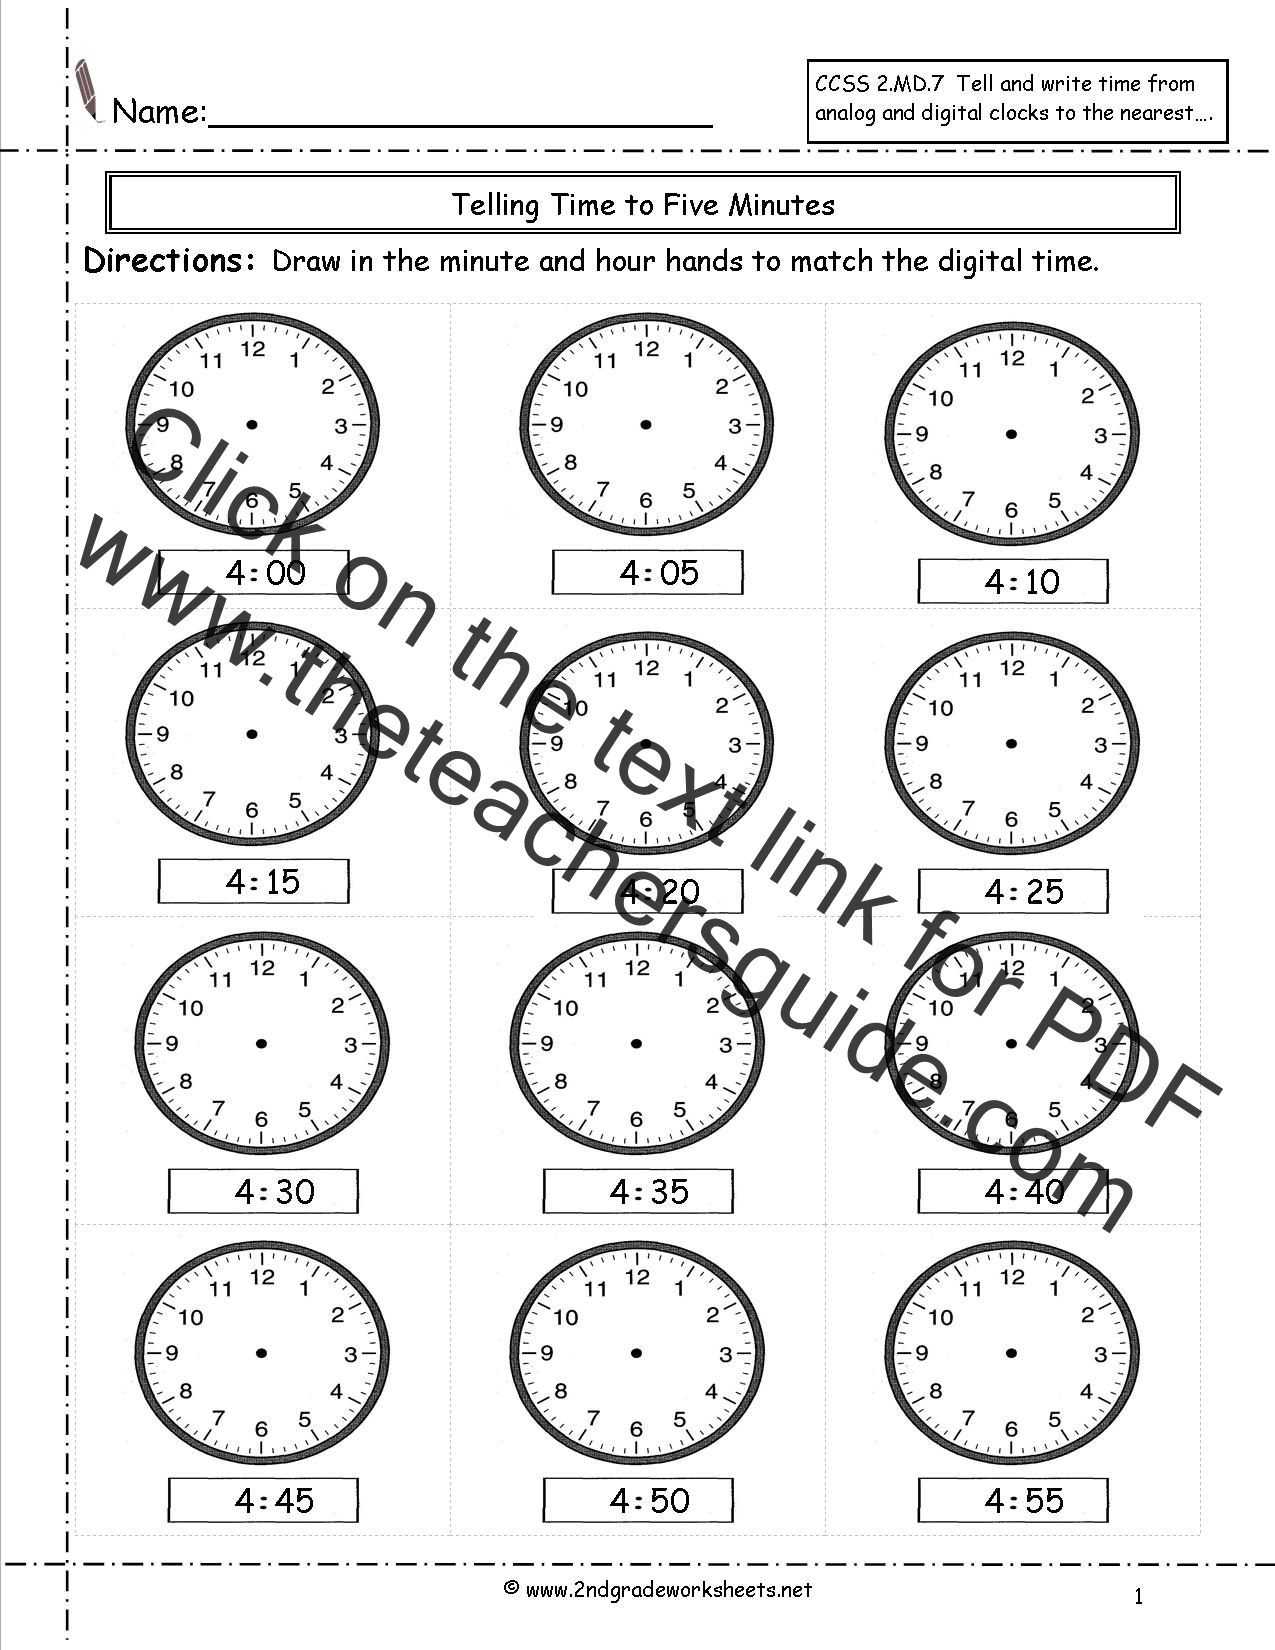 Ccss 2 Md 7 Worksheets Telling Time To Five Minutes Worksheets